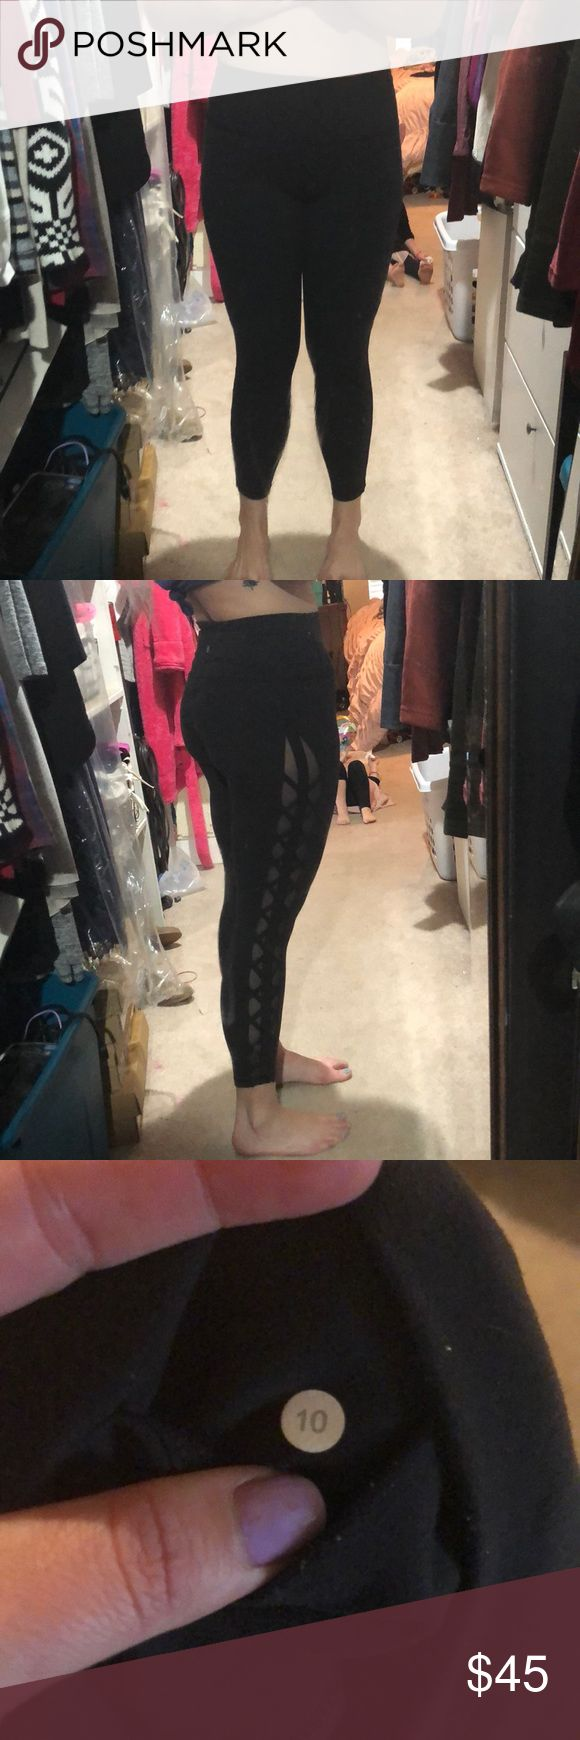 Lululemon Size 10 tights 7/8ths Lululemon tights for sale. Leg mesh criss cross retail, hi rise and back inner pocket. No rips or stains, some pilling in the crotch. lululemon athletica Pants